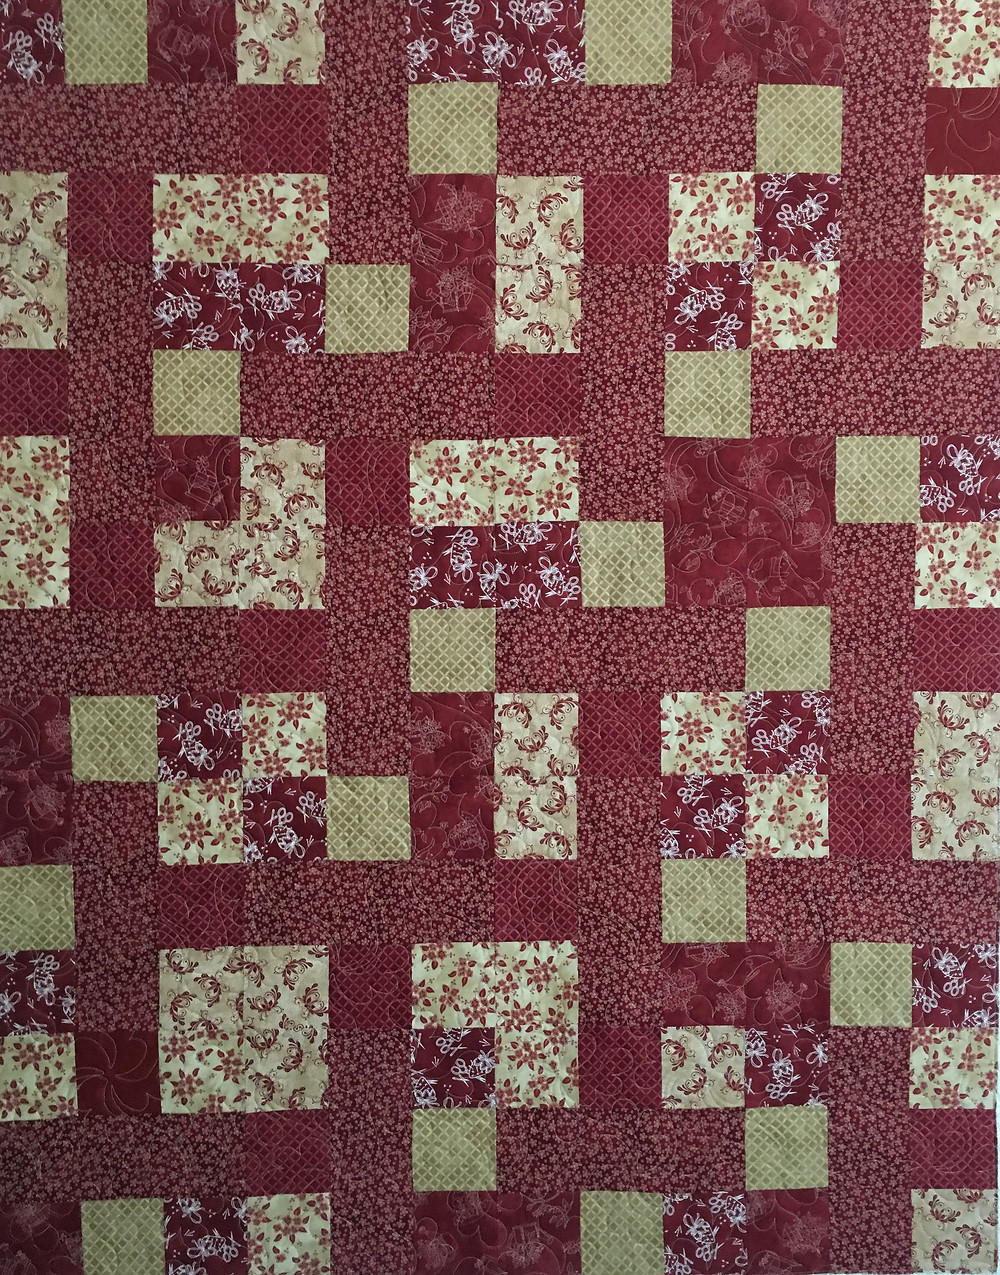 Red and Gold blocks quilt by Linda Maker